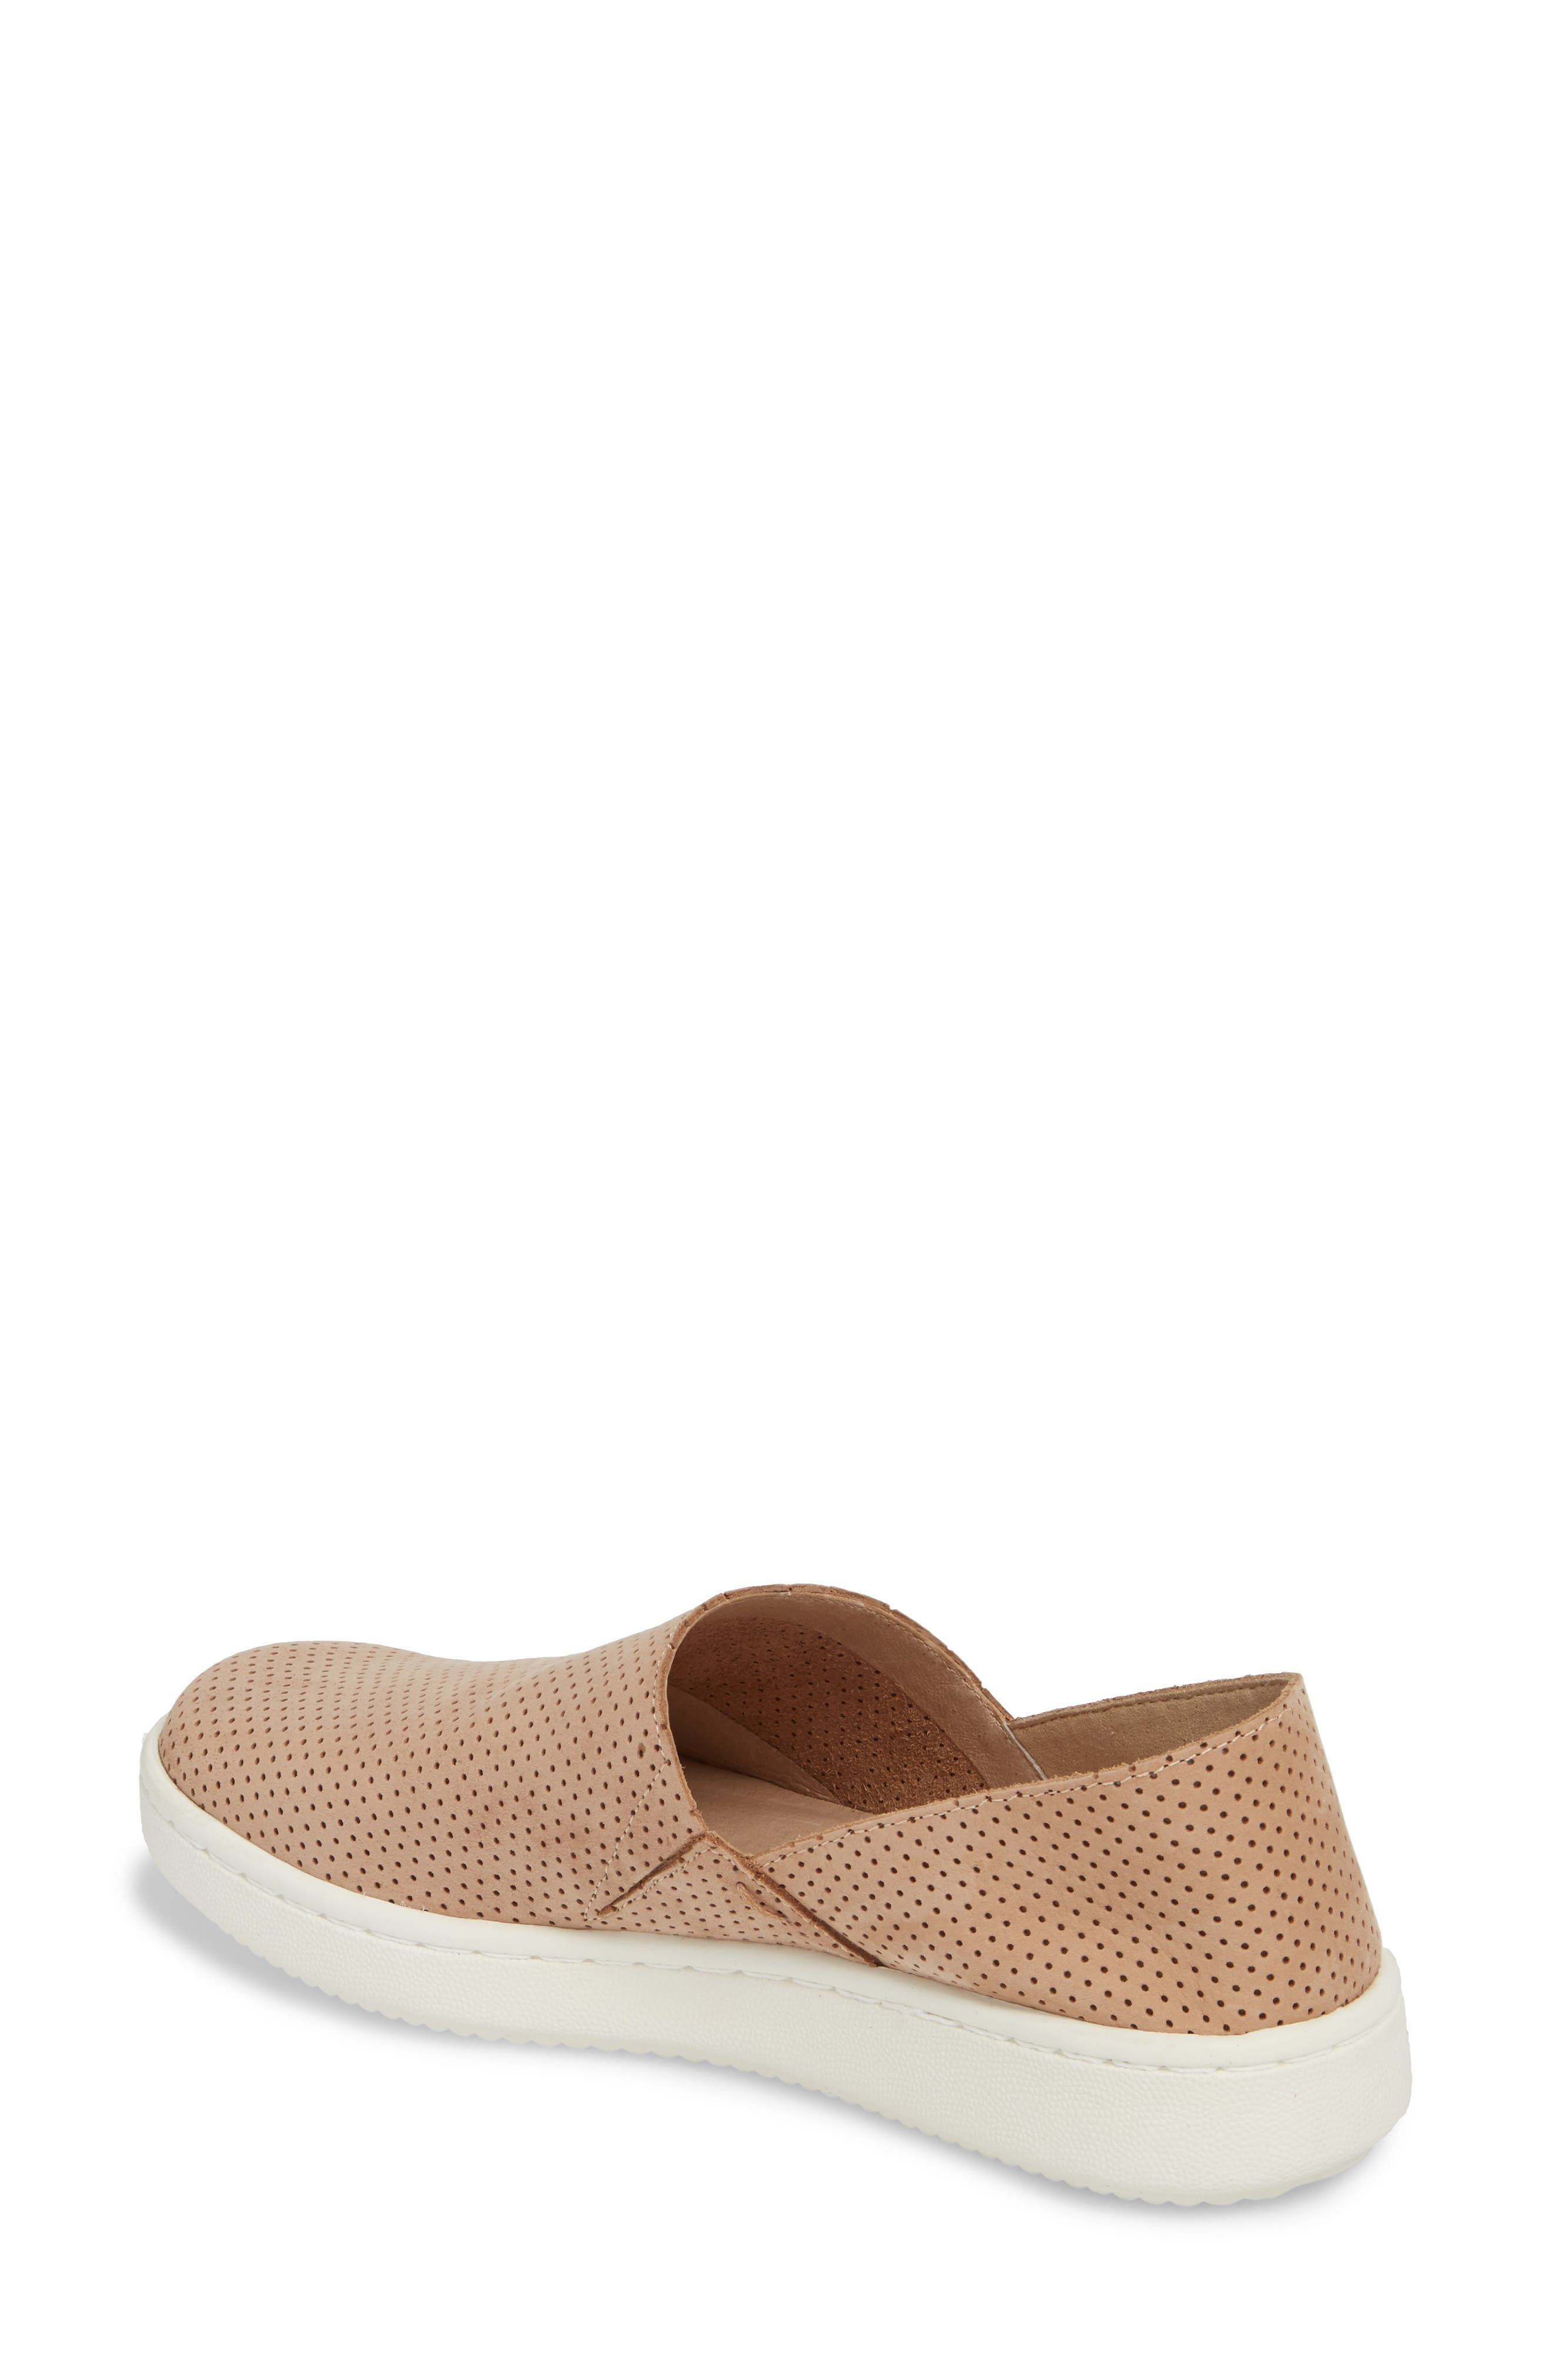 Alternate Image 2  - Eileen Fisher Panda Perforated Slip-On Sneaker (Women)